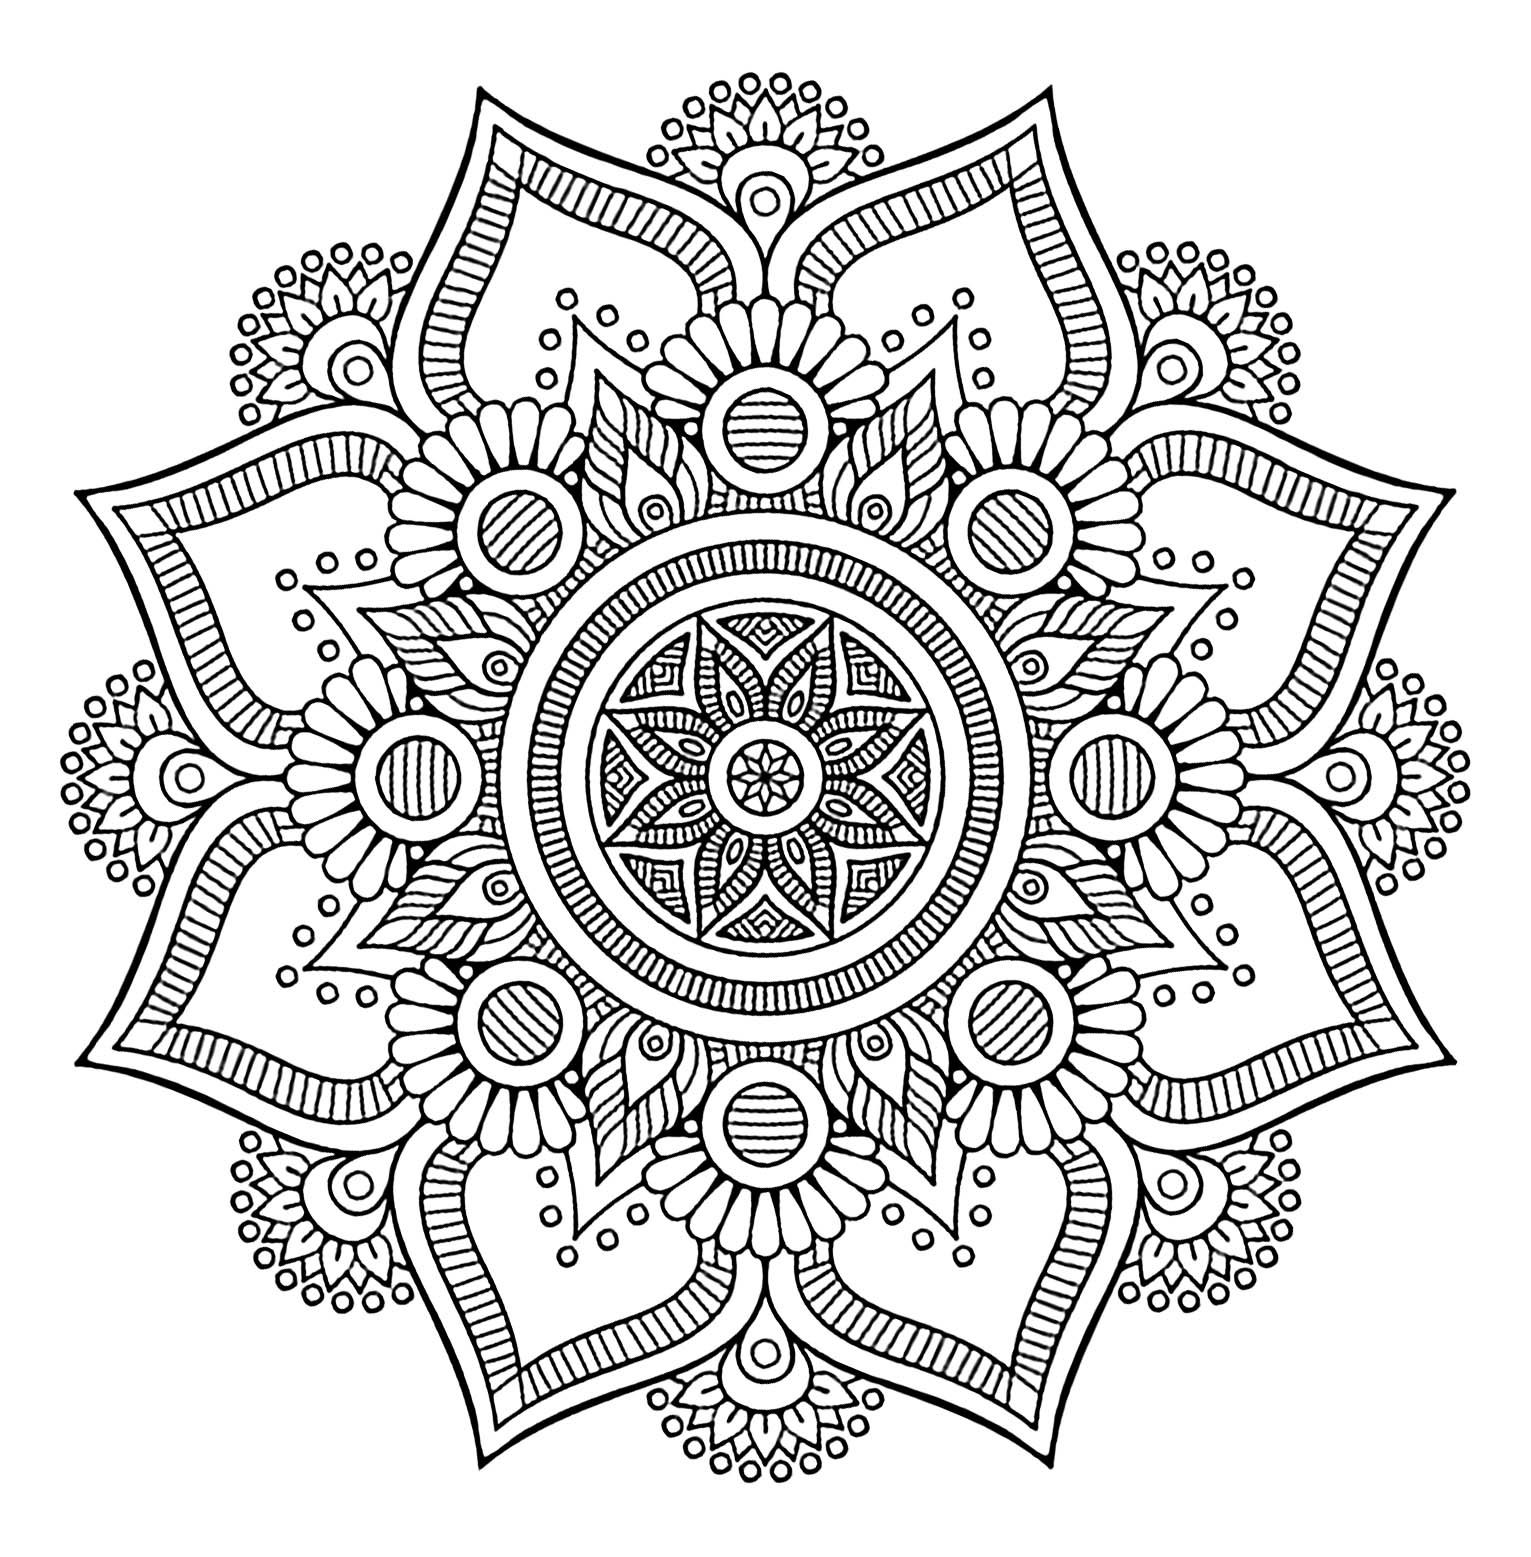 The Big Flower Cool Mandala With 8 Big Petals And Vegetal Patterns From The Gallery Mandalas Just In 2020 Mandala Coloring Mandala Coloring Pages Coloring Pages